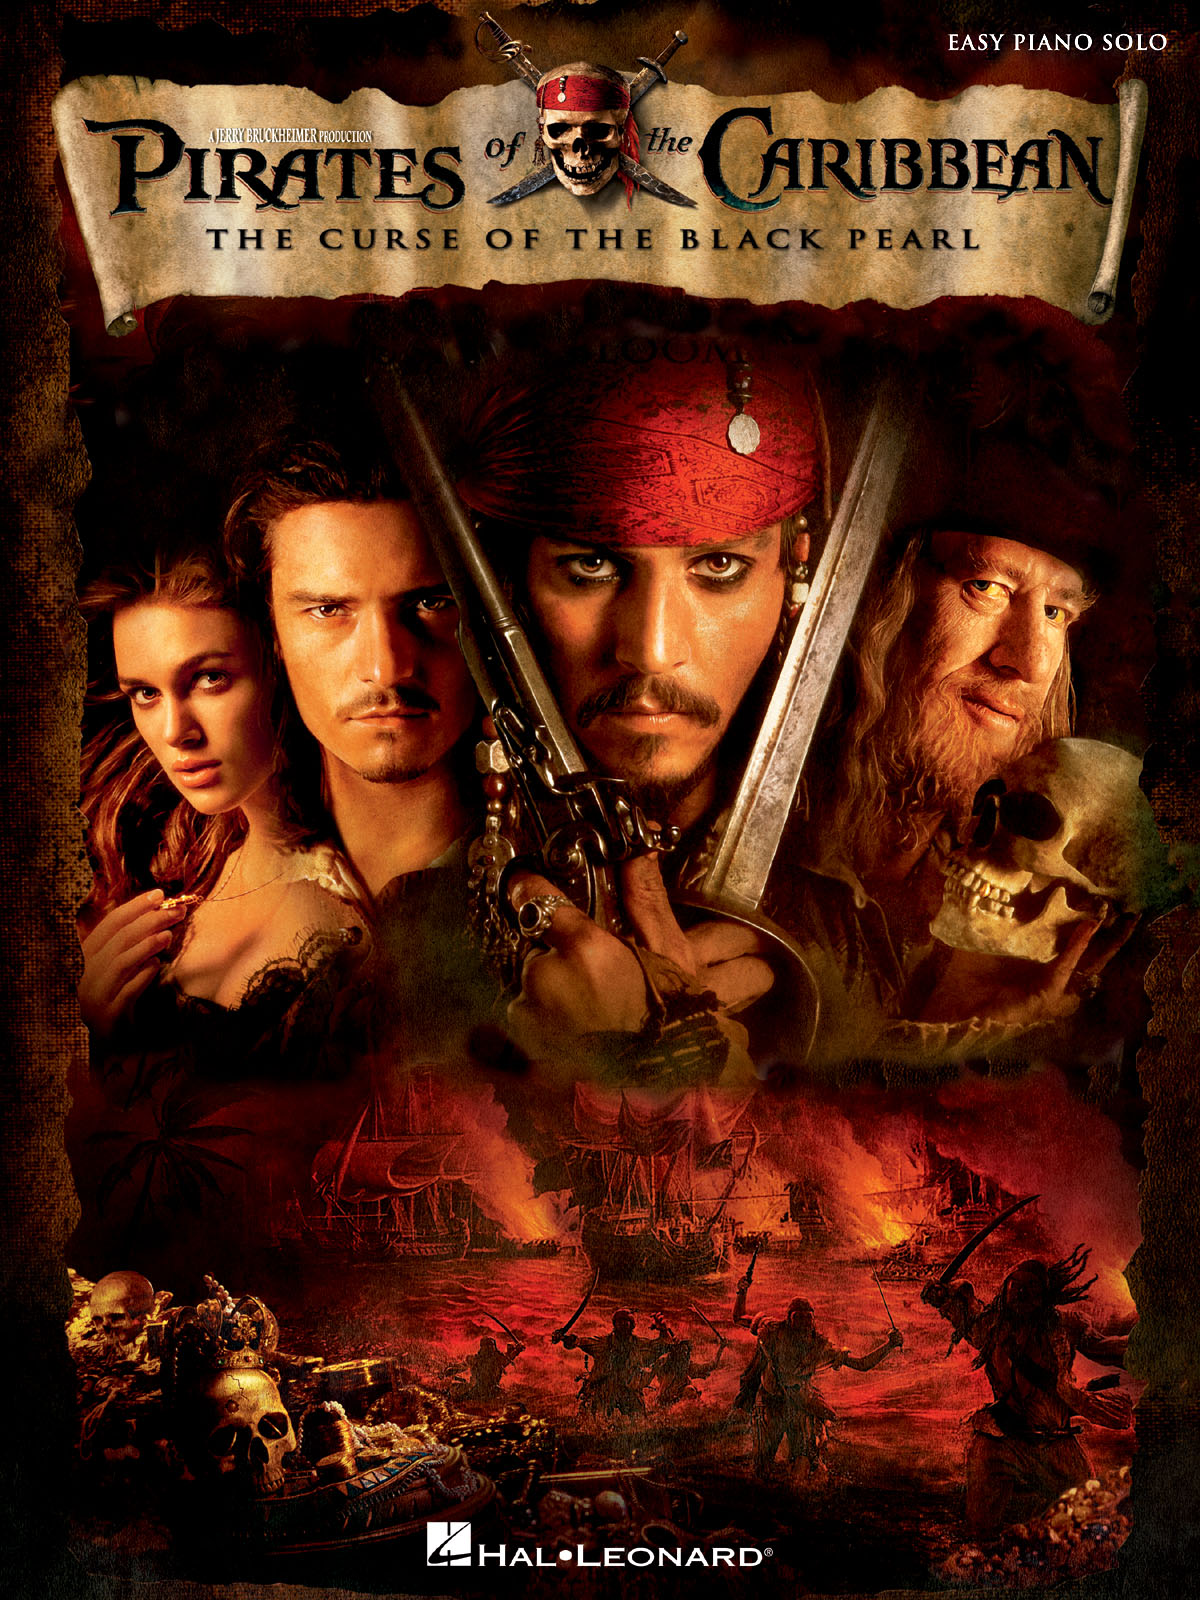 http://2.bp.blogspot.com/-ncFrdKk6pJQ/Tc-SxGFrm3I/AAAAAAAAACM/NkyB2qUNaiA/s1600/Pirates-of-the-caribbean-The-curse-of-the-black-pearl.jpg